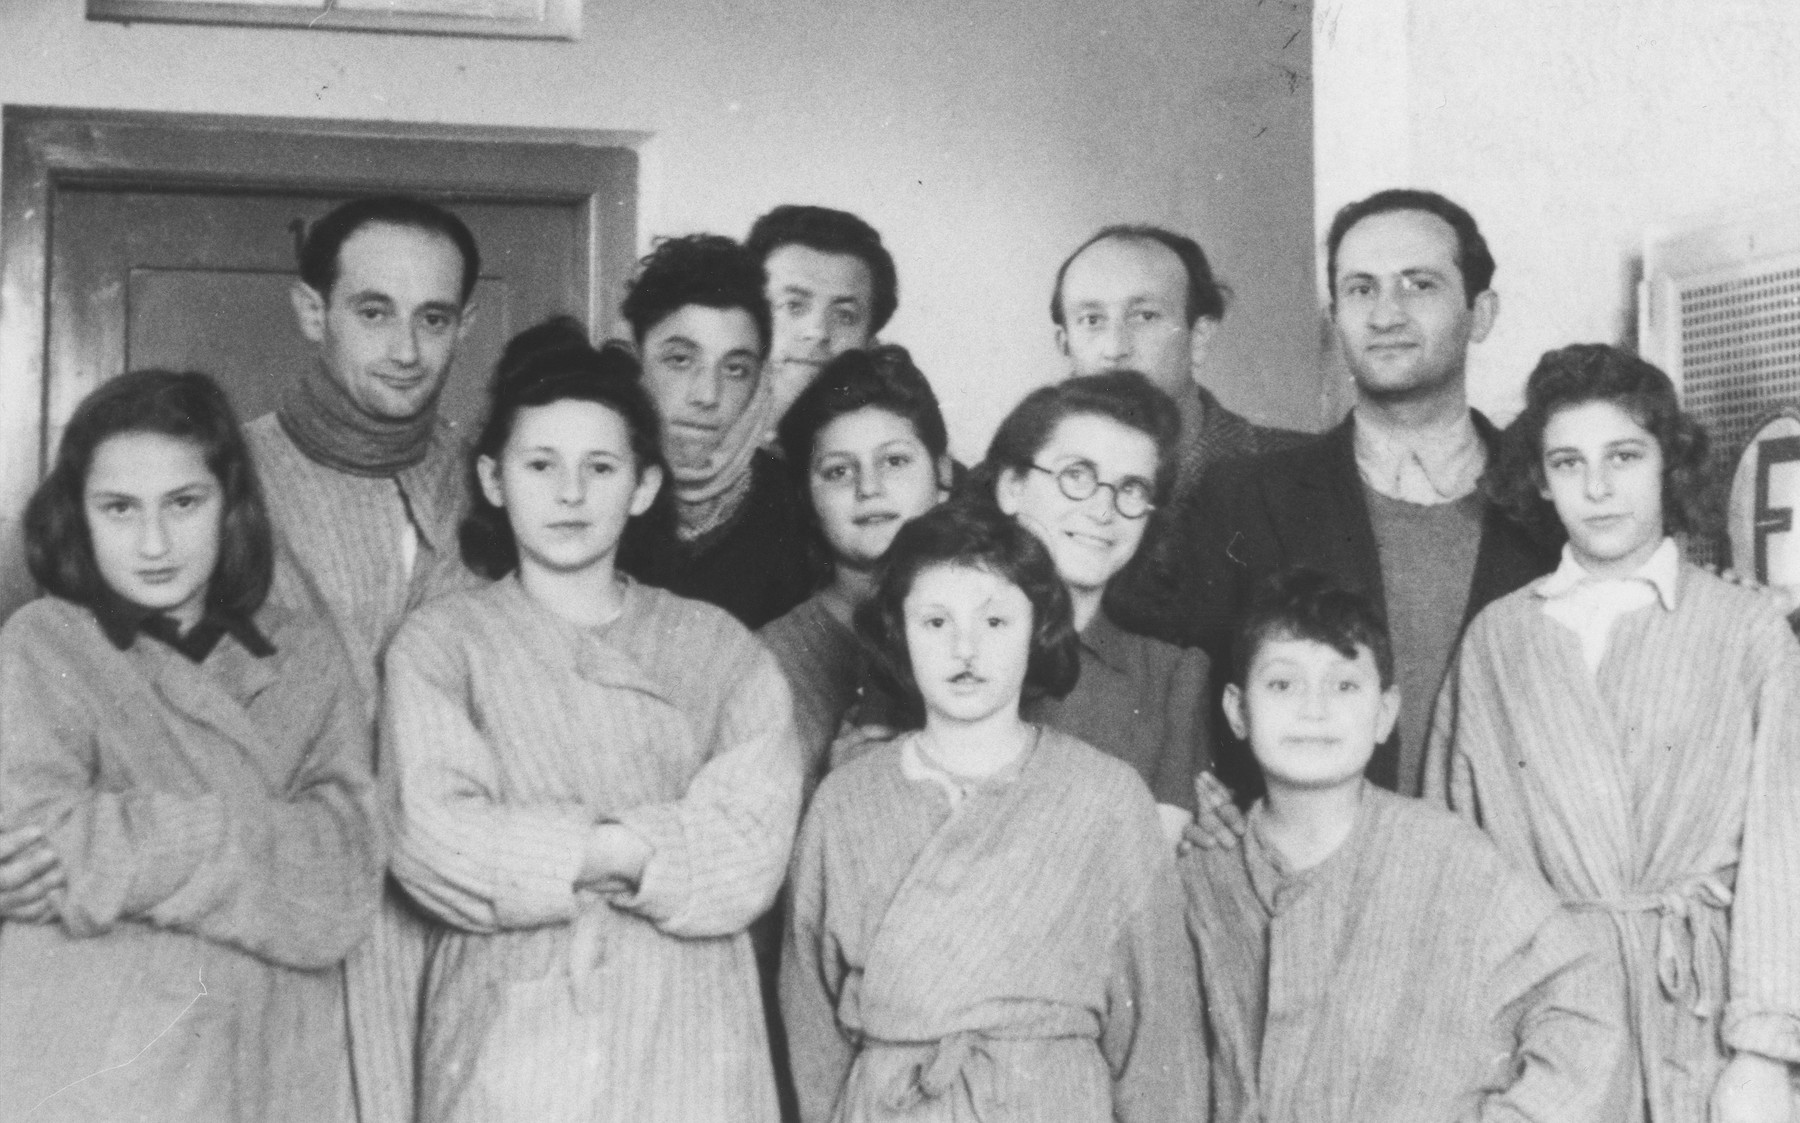 Group portrait of Jewish DP children in a hospital in Ulm Dornstadt.  Among those pictured is Yona Kunstler (on the far right) and her cousin, Stefa Grossman (on the far left).